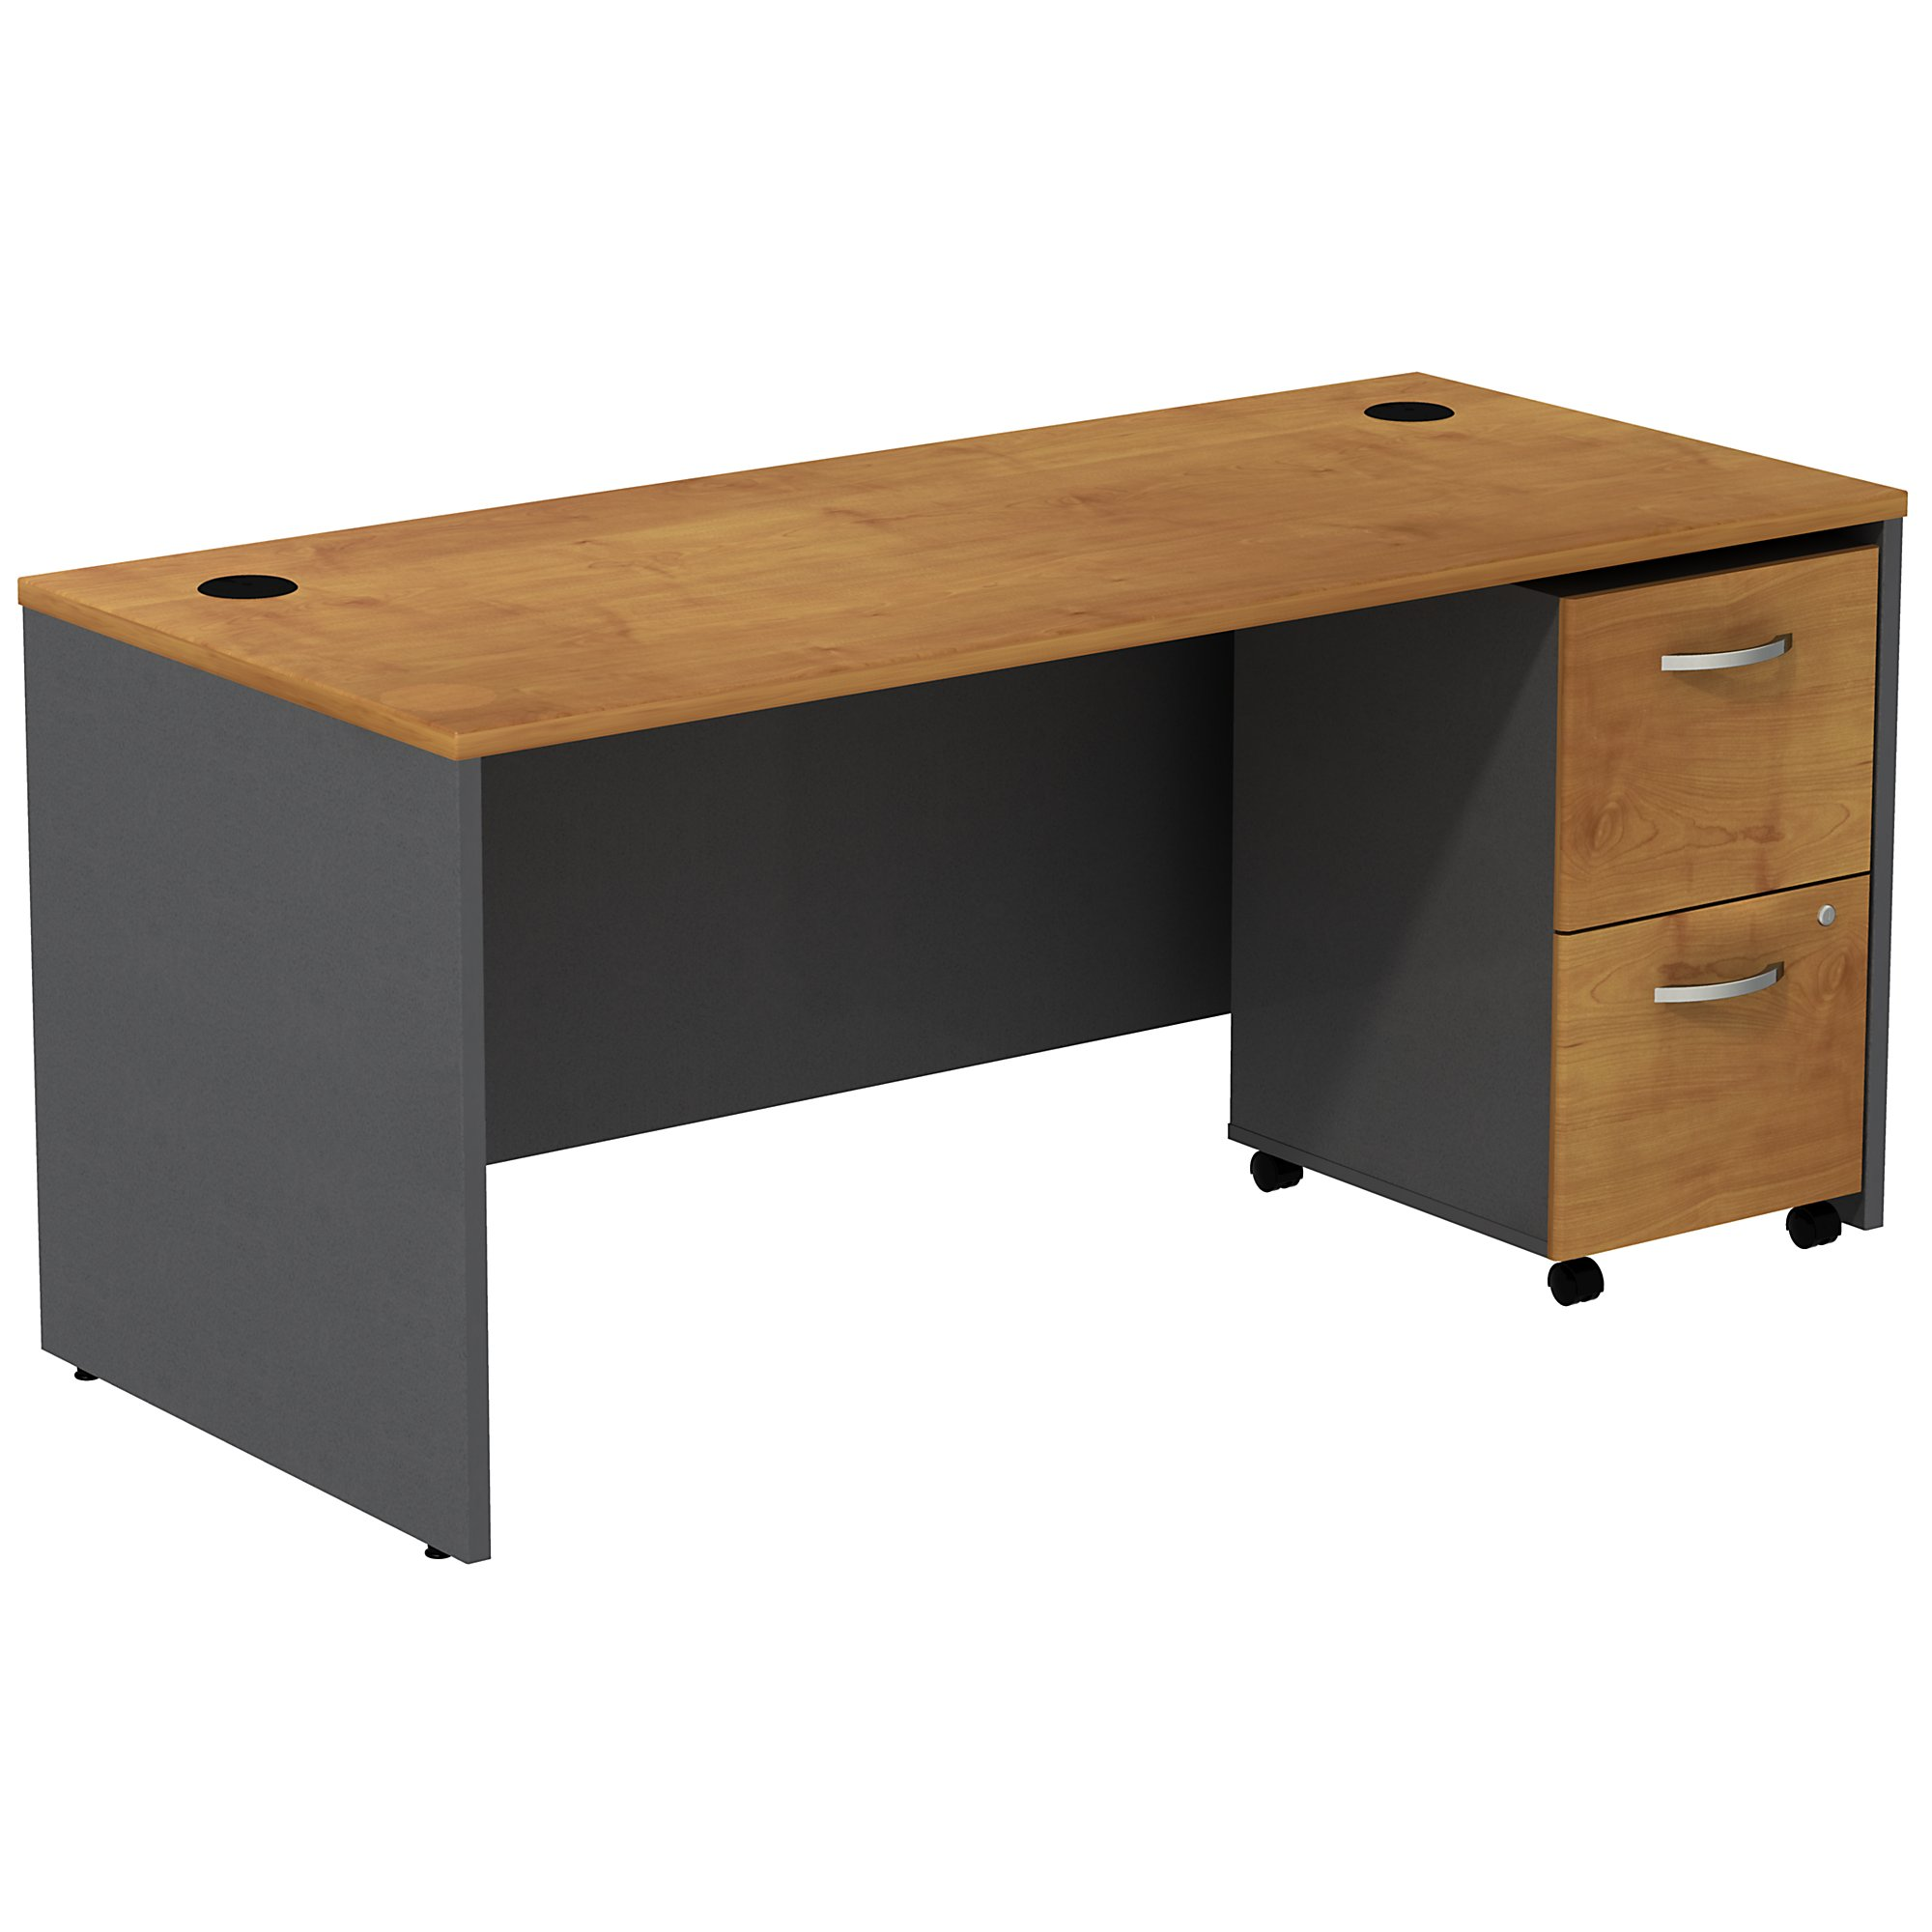 natural cherry series c desk with mobile pedestal